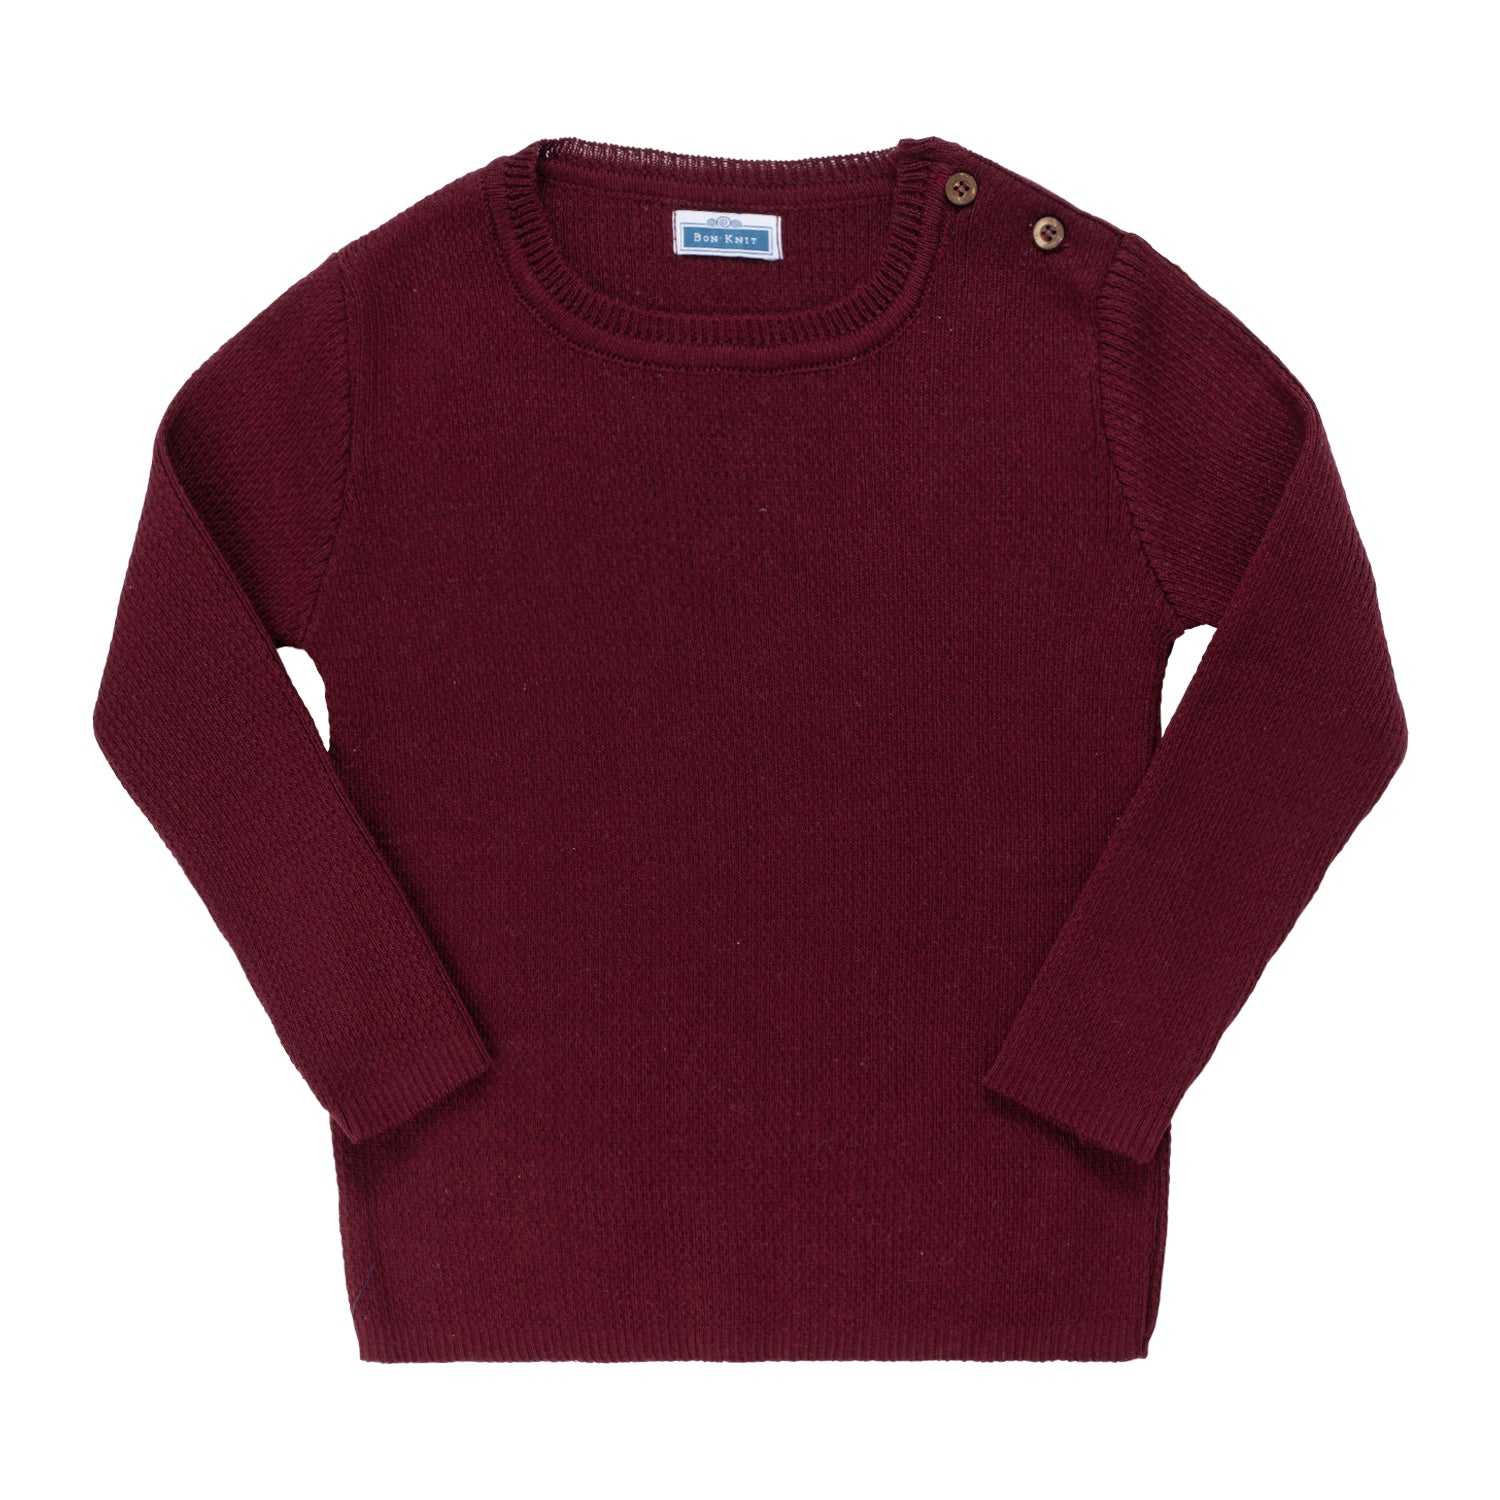 Knit Ribbed Top ~ Burgundy